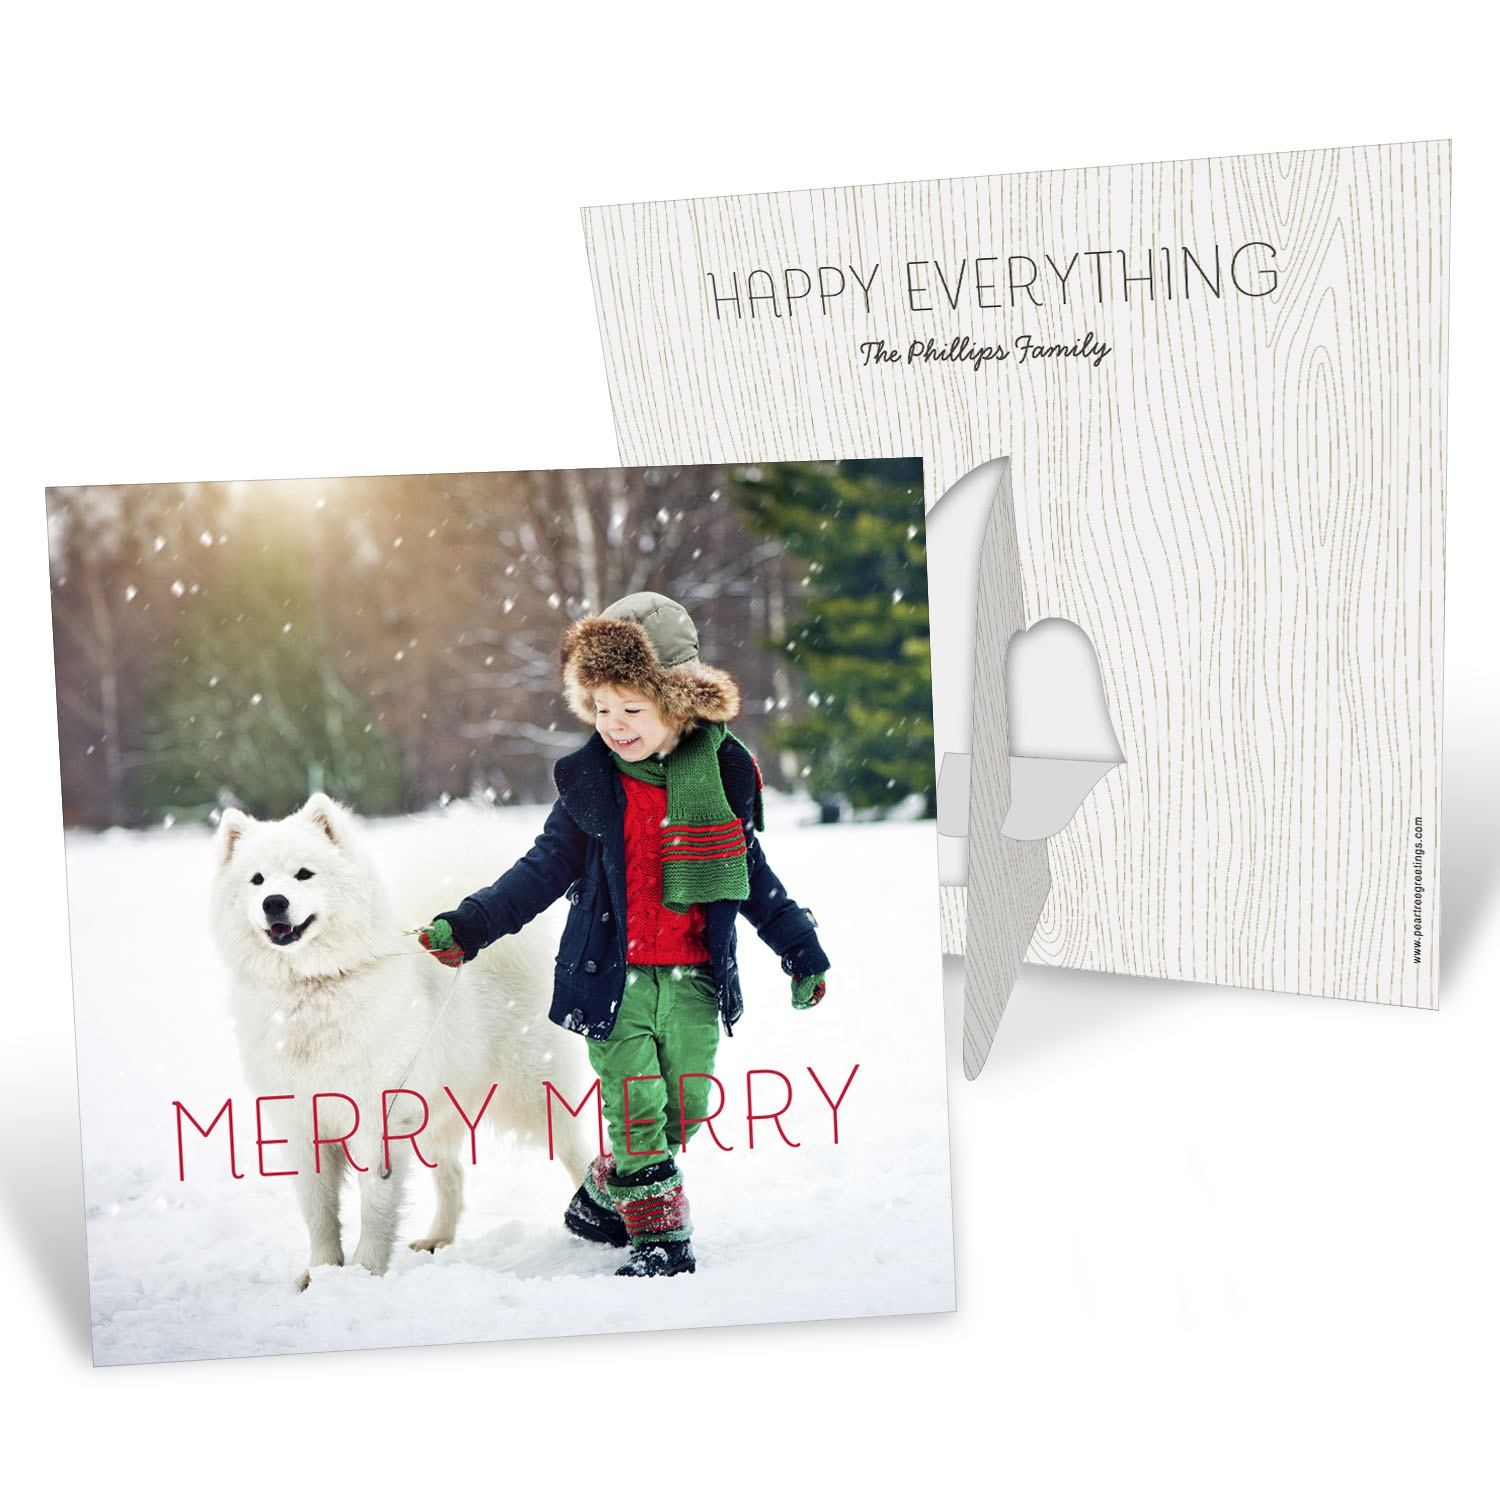 Merry Merry Picture Frame Christmas Cards